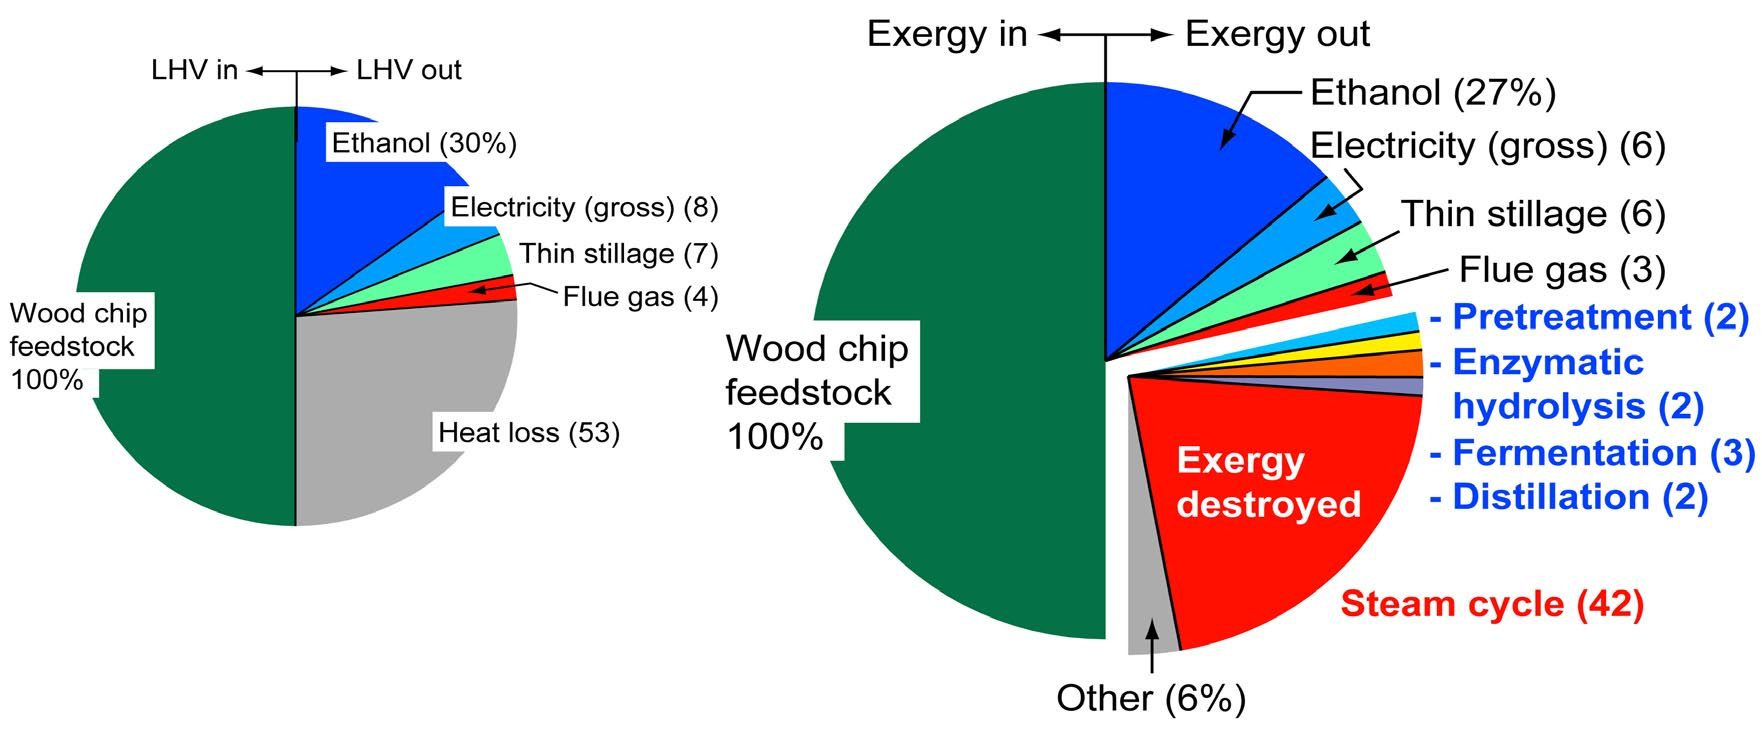 Energy inputs and outputs (on the basis of lower heating value,